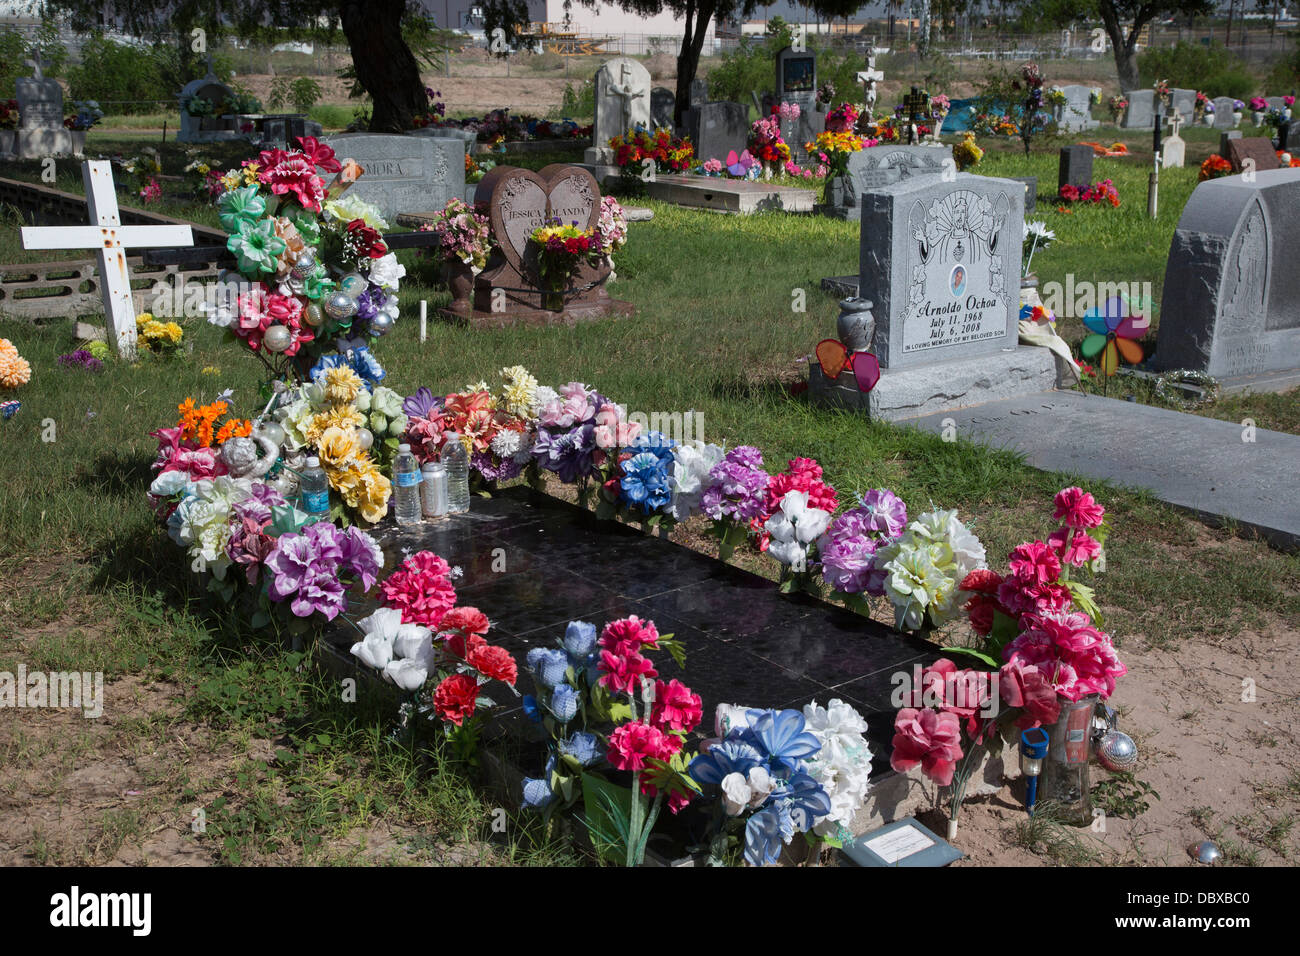 Mcallen Texas Artificial Flowers And Bottled Water On A Grave In